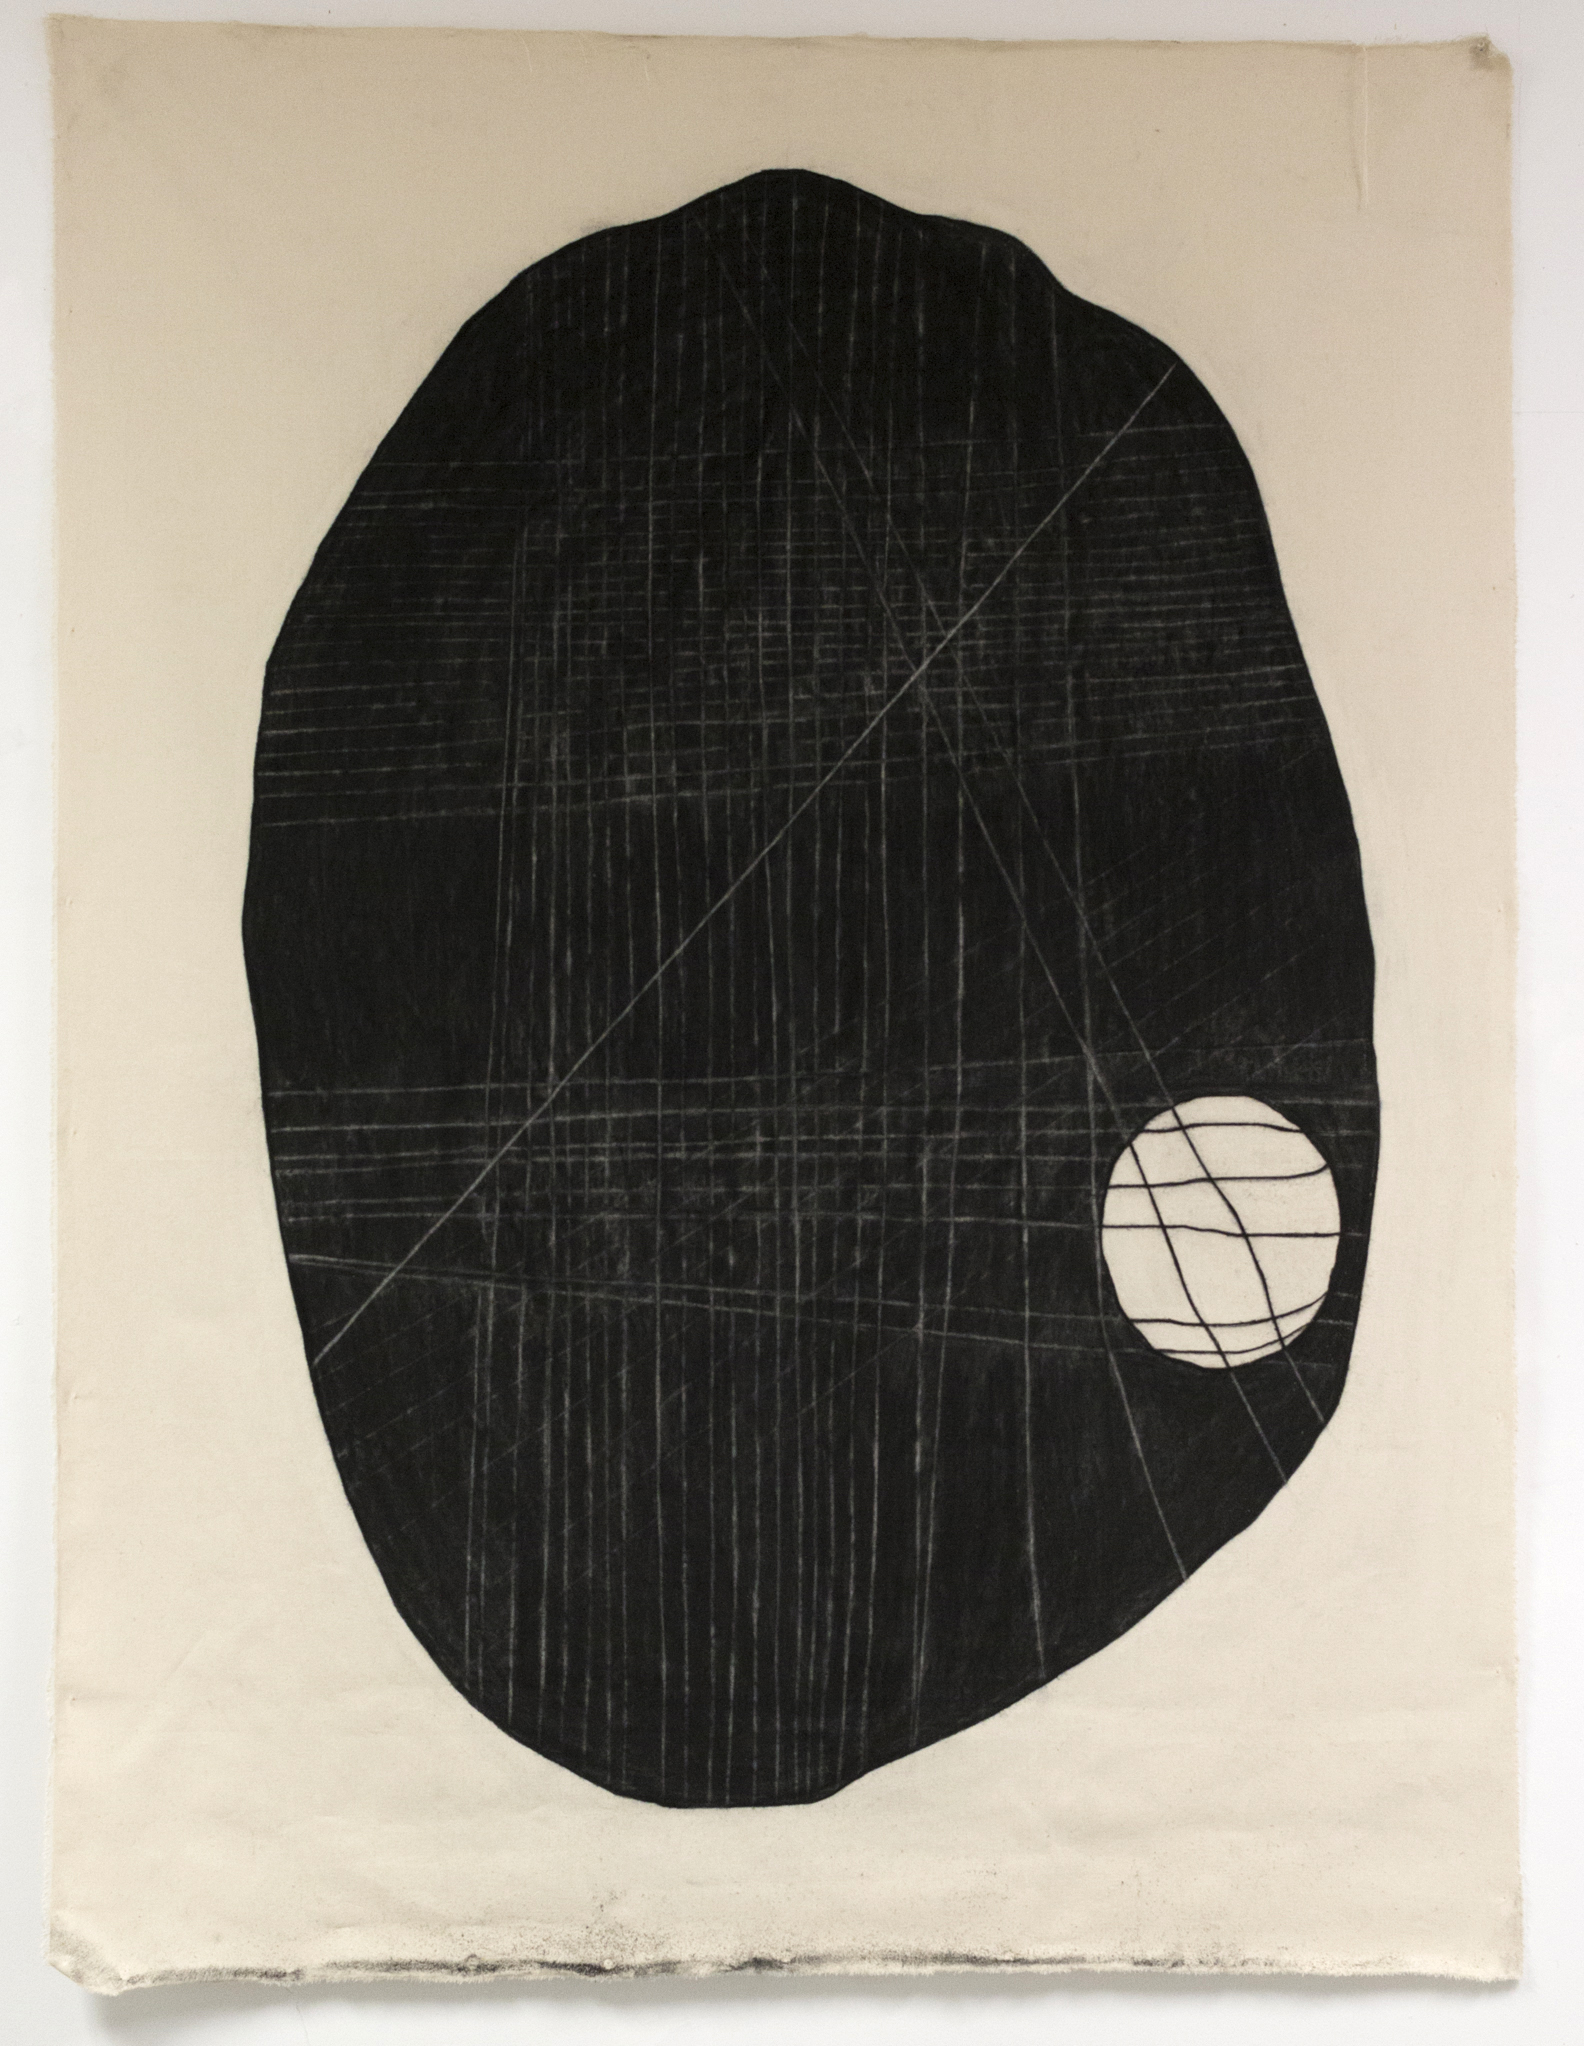 Taylor Barnes, That Thing You Said Still Eats at Me ,charcoal on cloth